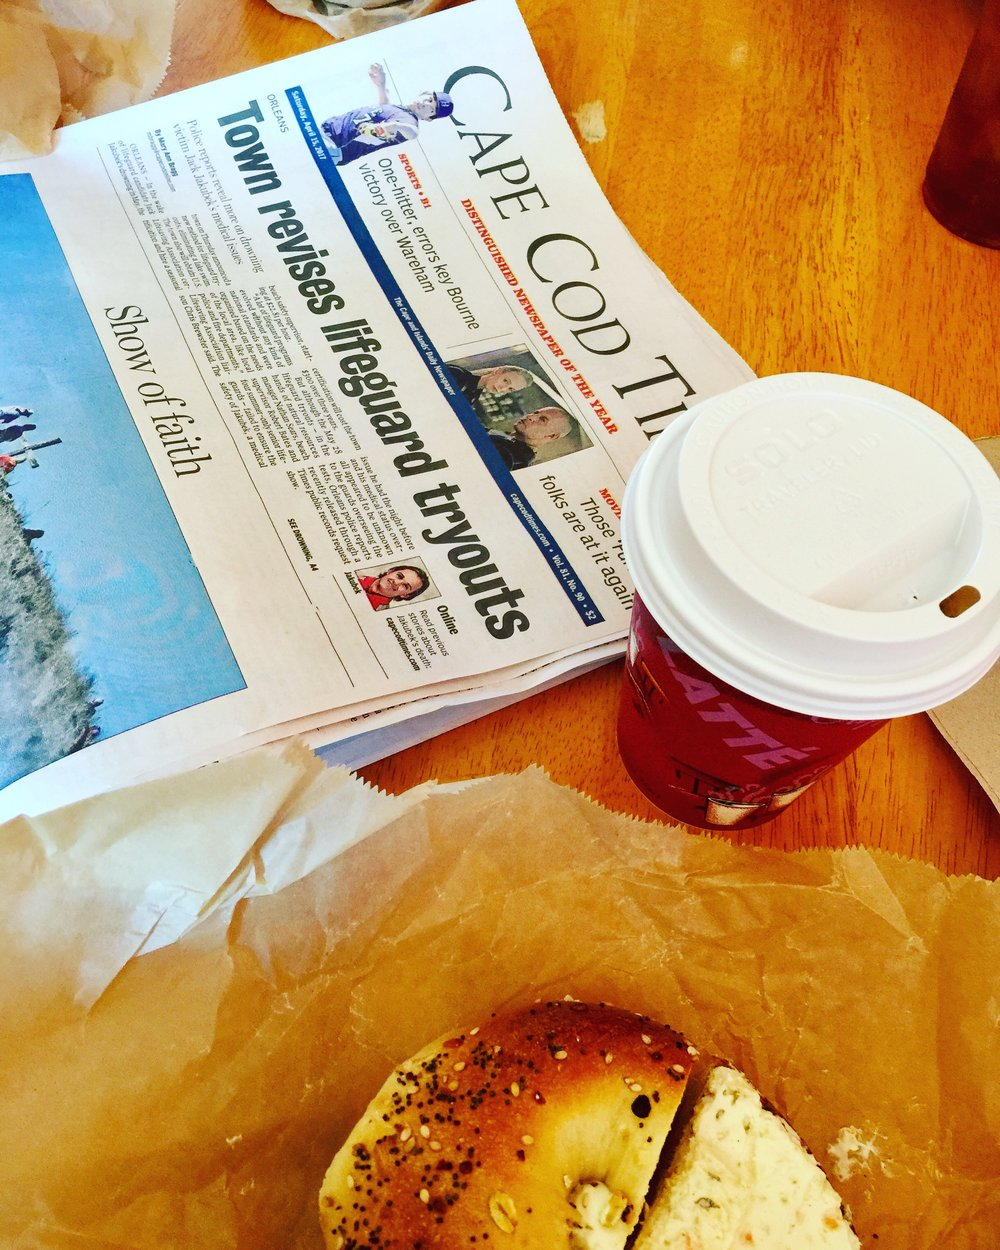 Coffee and a small Cape town daily newspaper.  Classic.